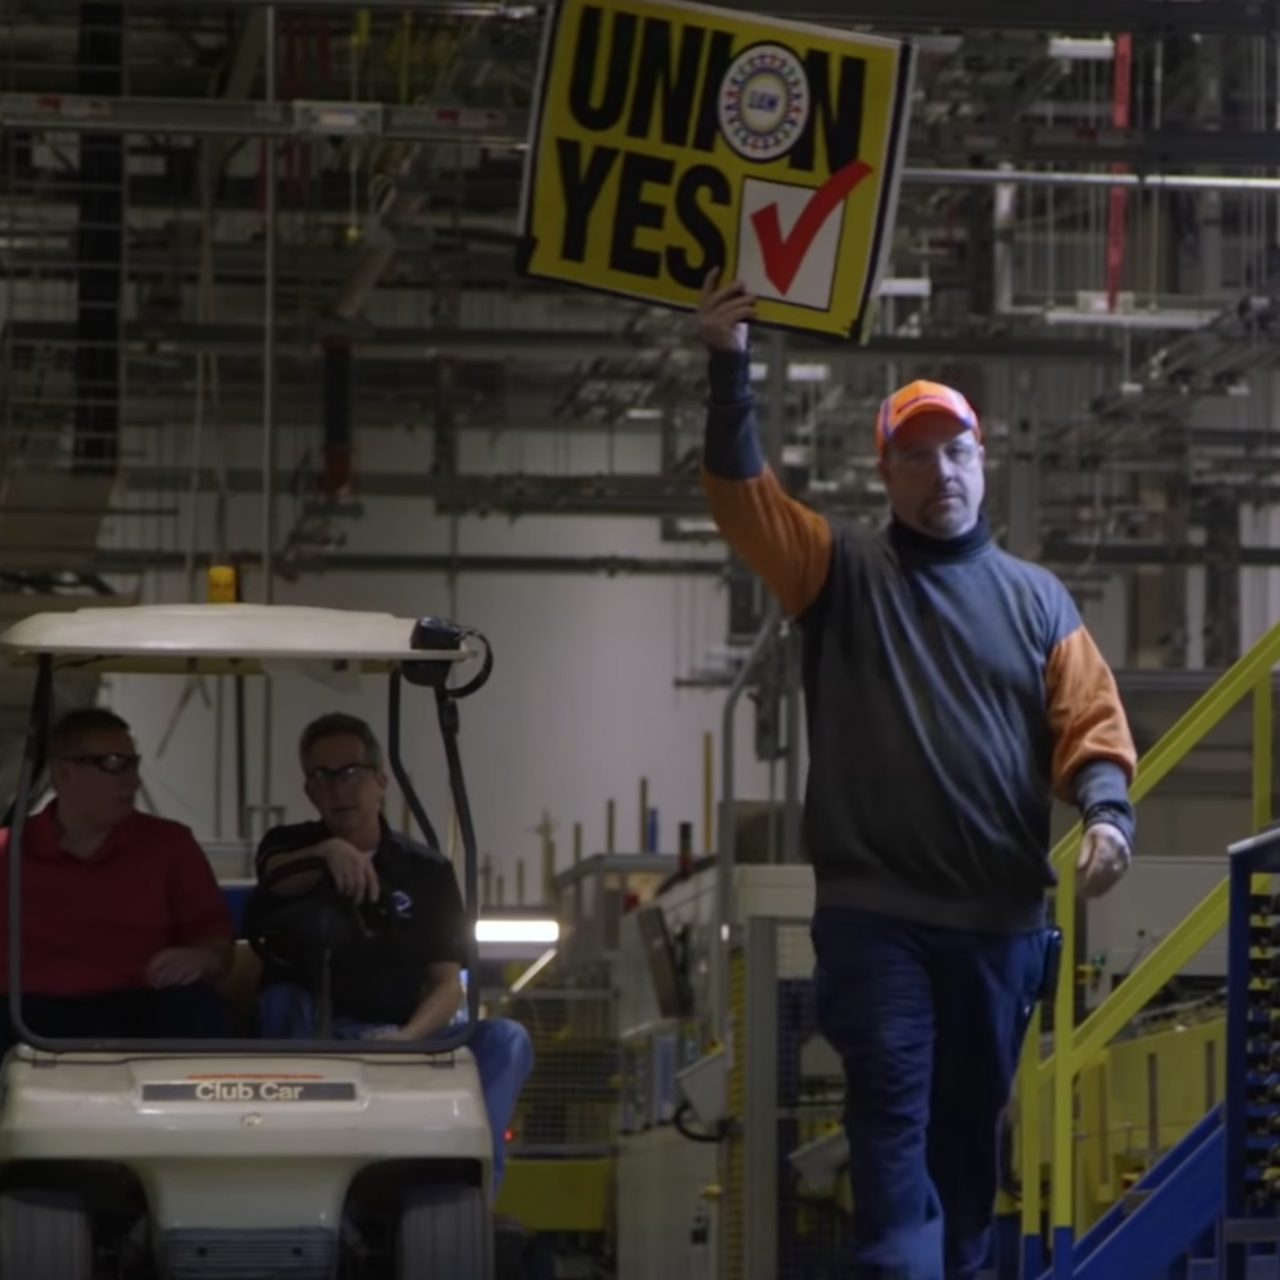 man holding Union Yes sign in factory